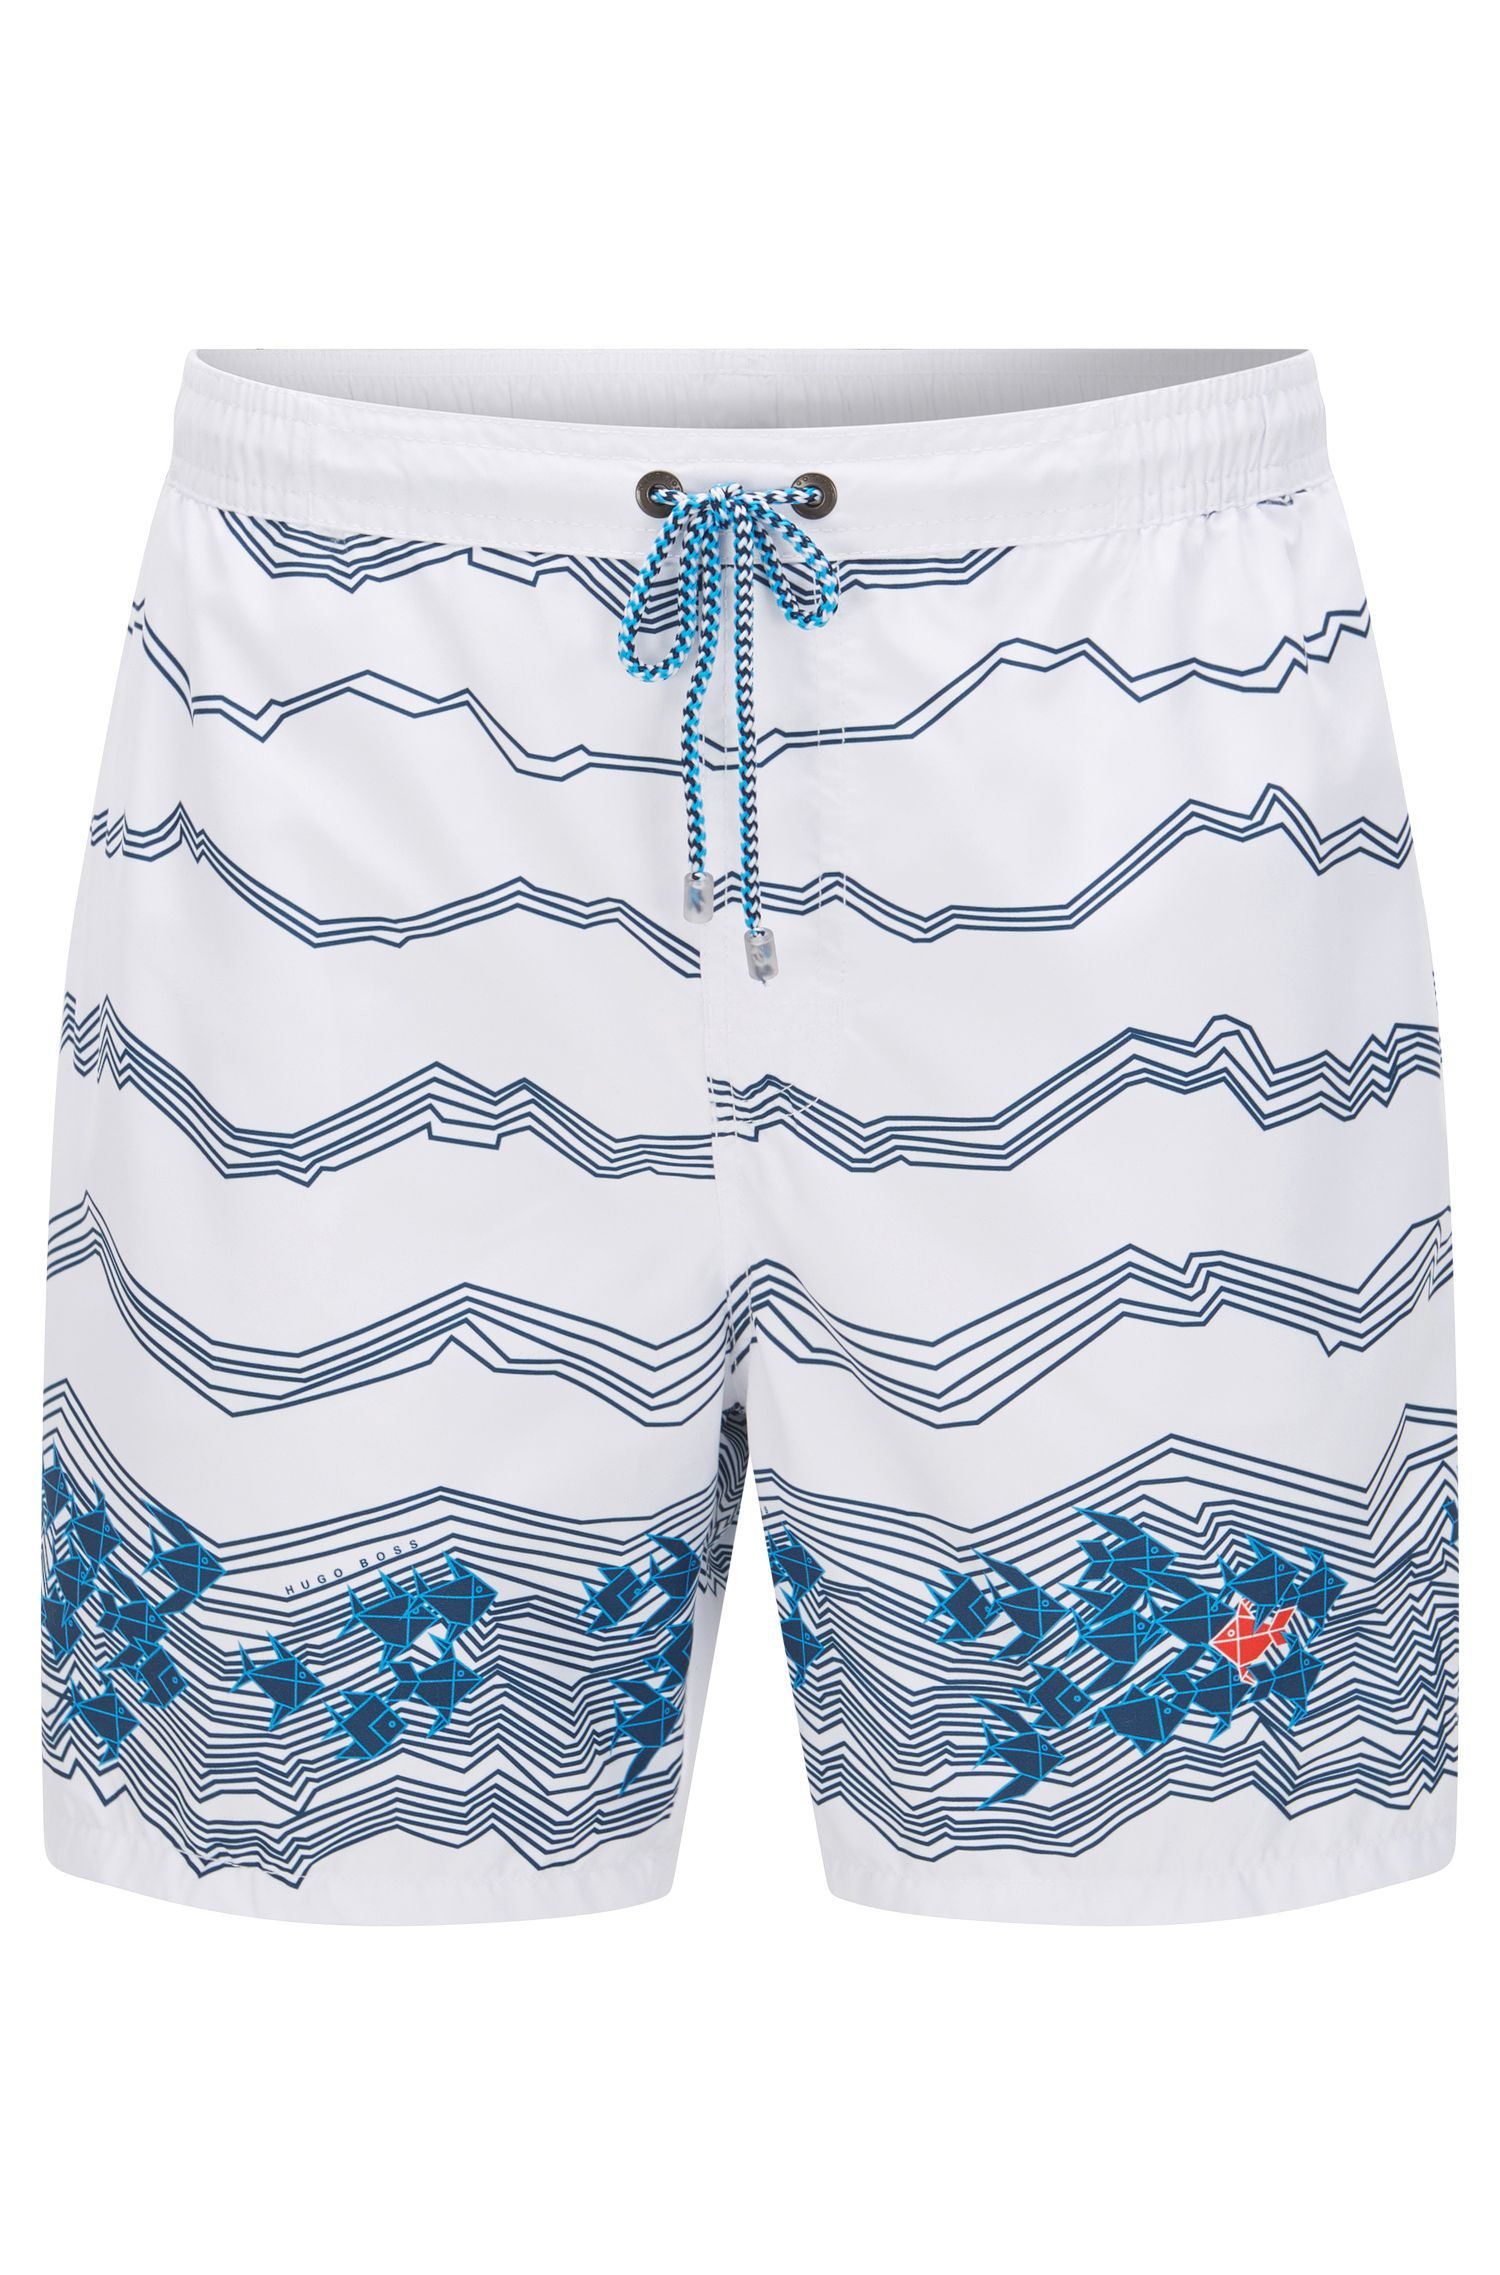 'Anemonefish' | Quick Dry Swim Trunks